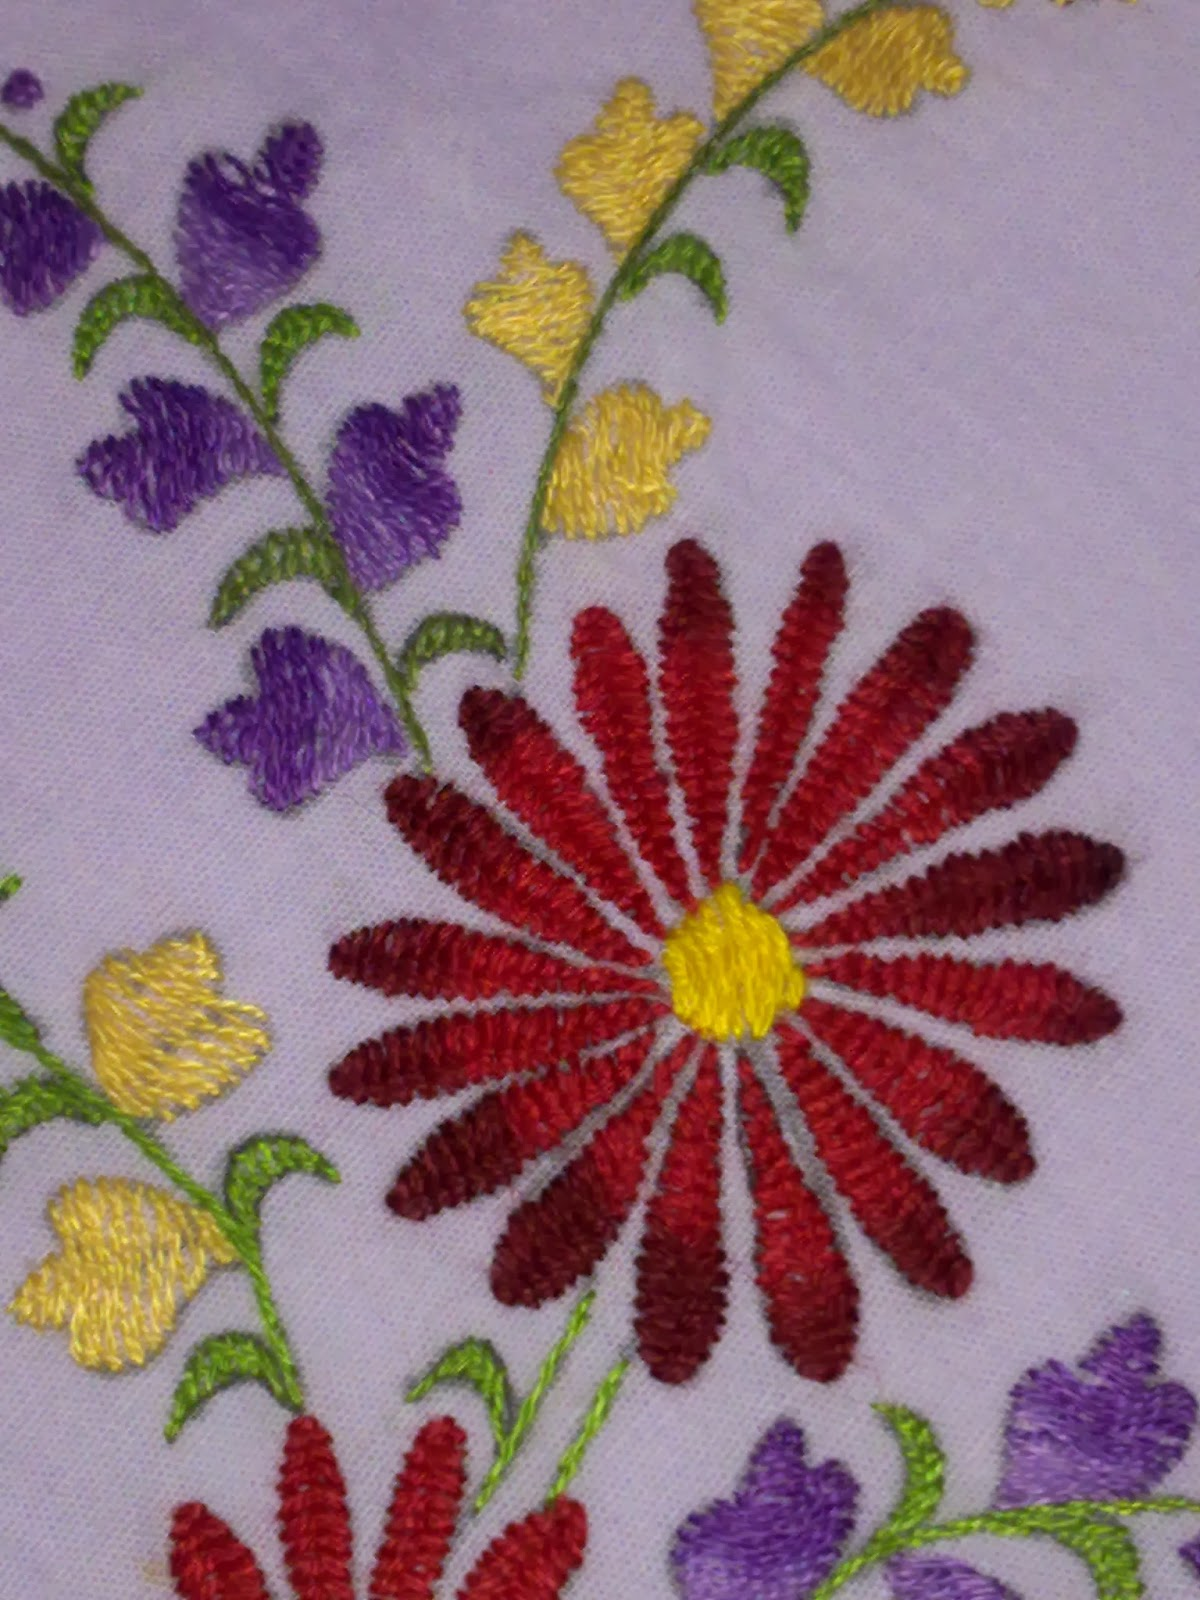 Herringbone Stitch Embroidery Designs